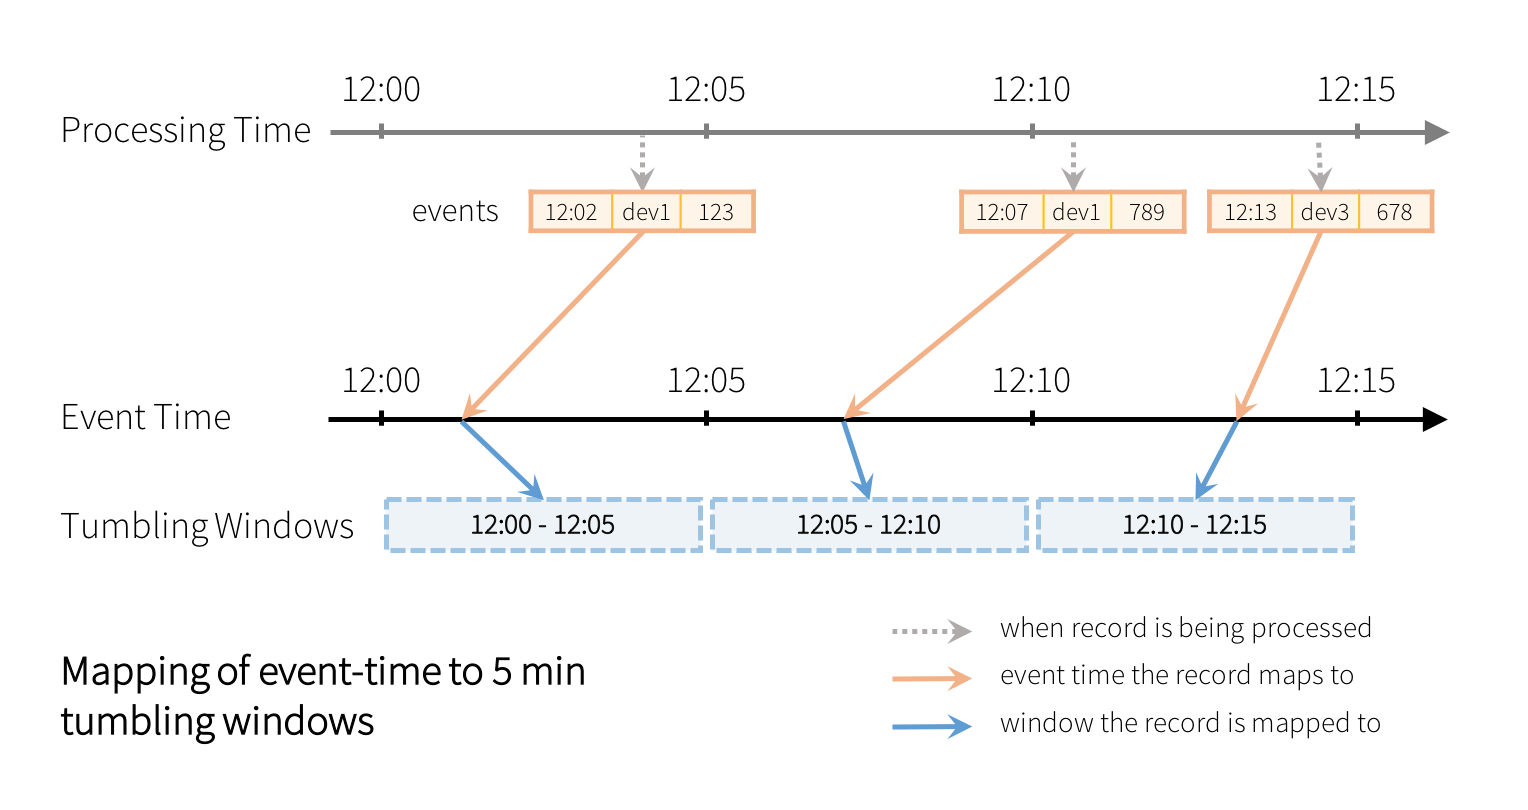 Mapping of event-time to 5 min tumbling windows